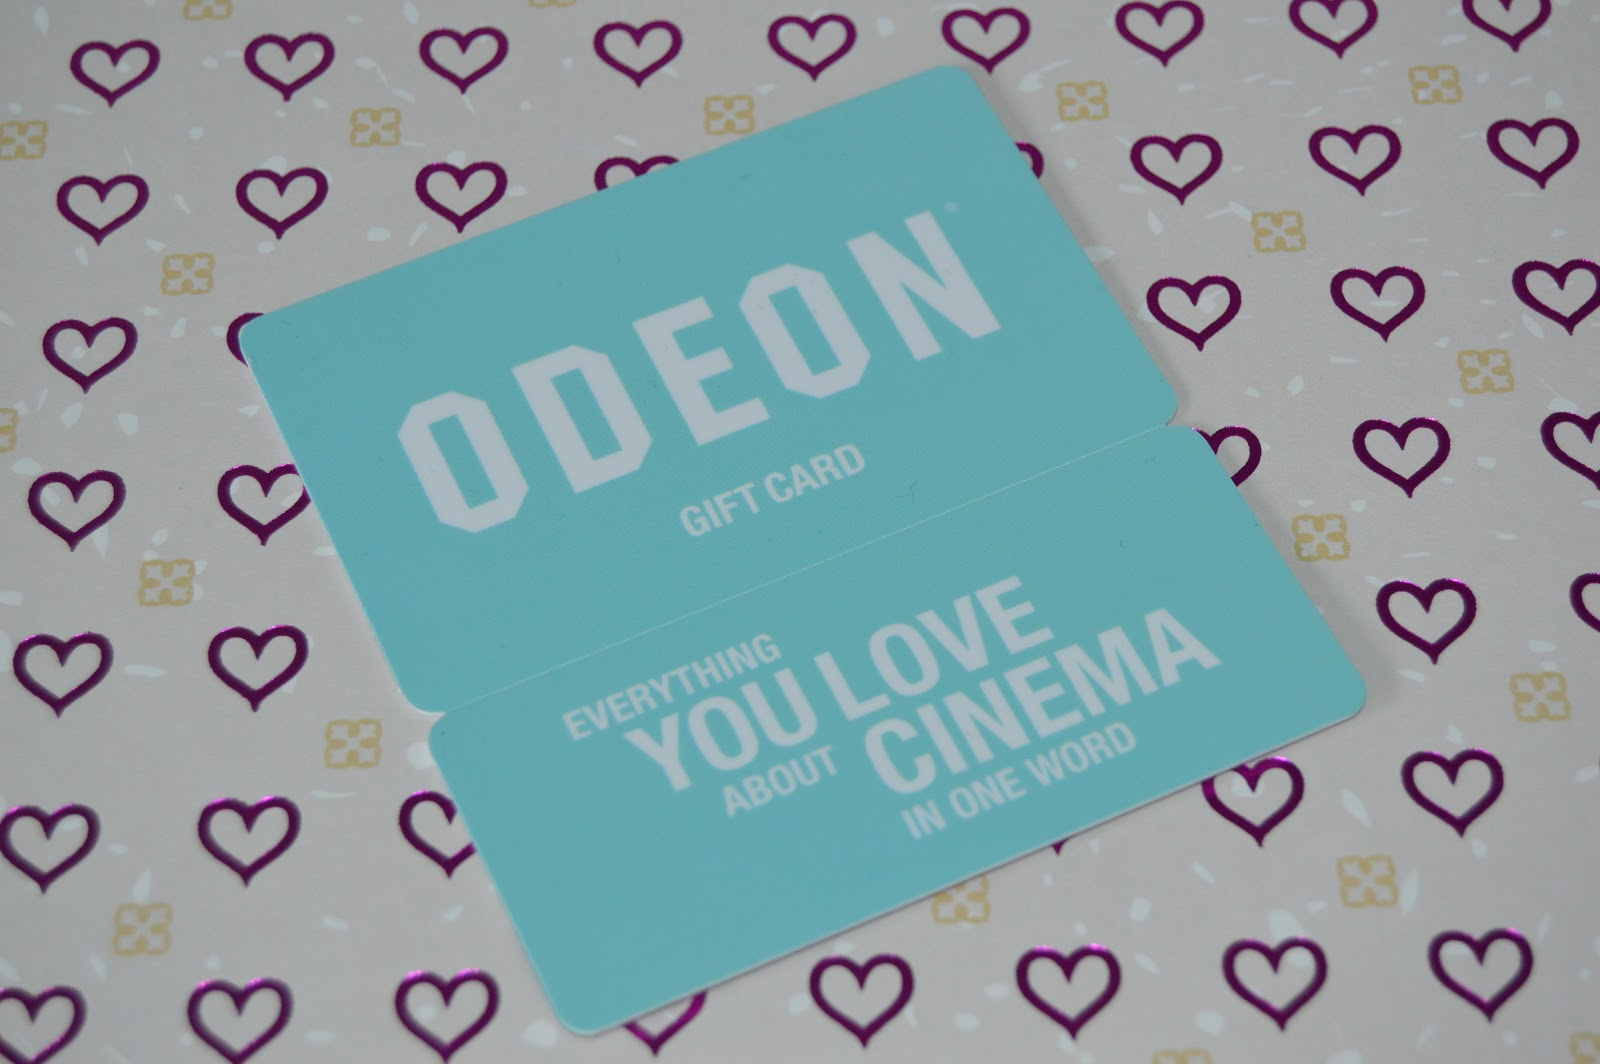 Odeon Gift Card